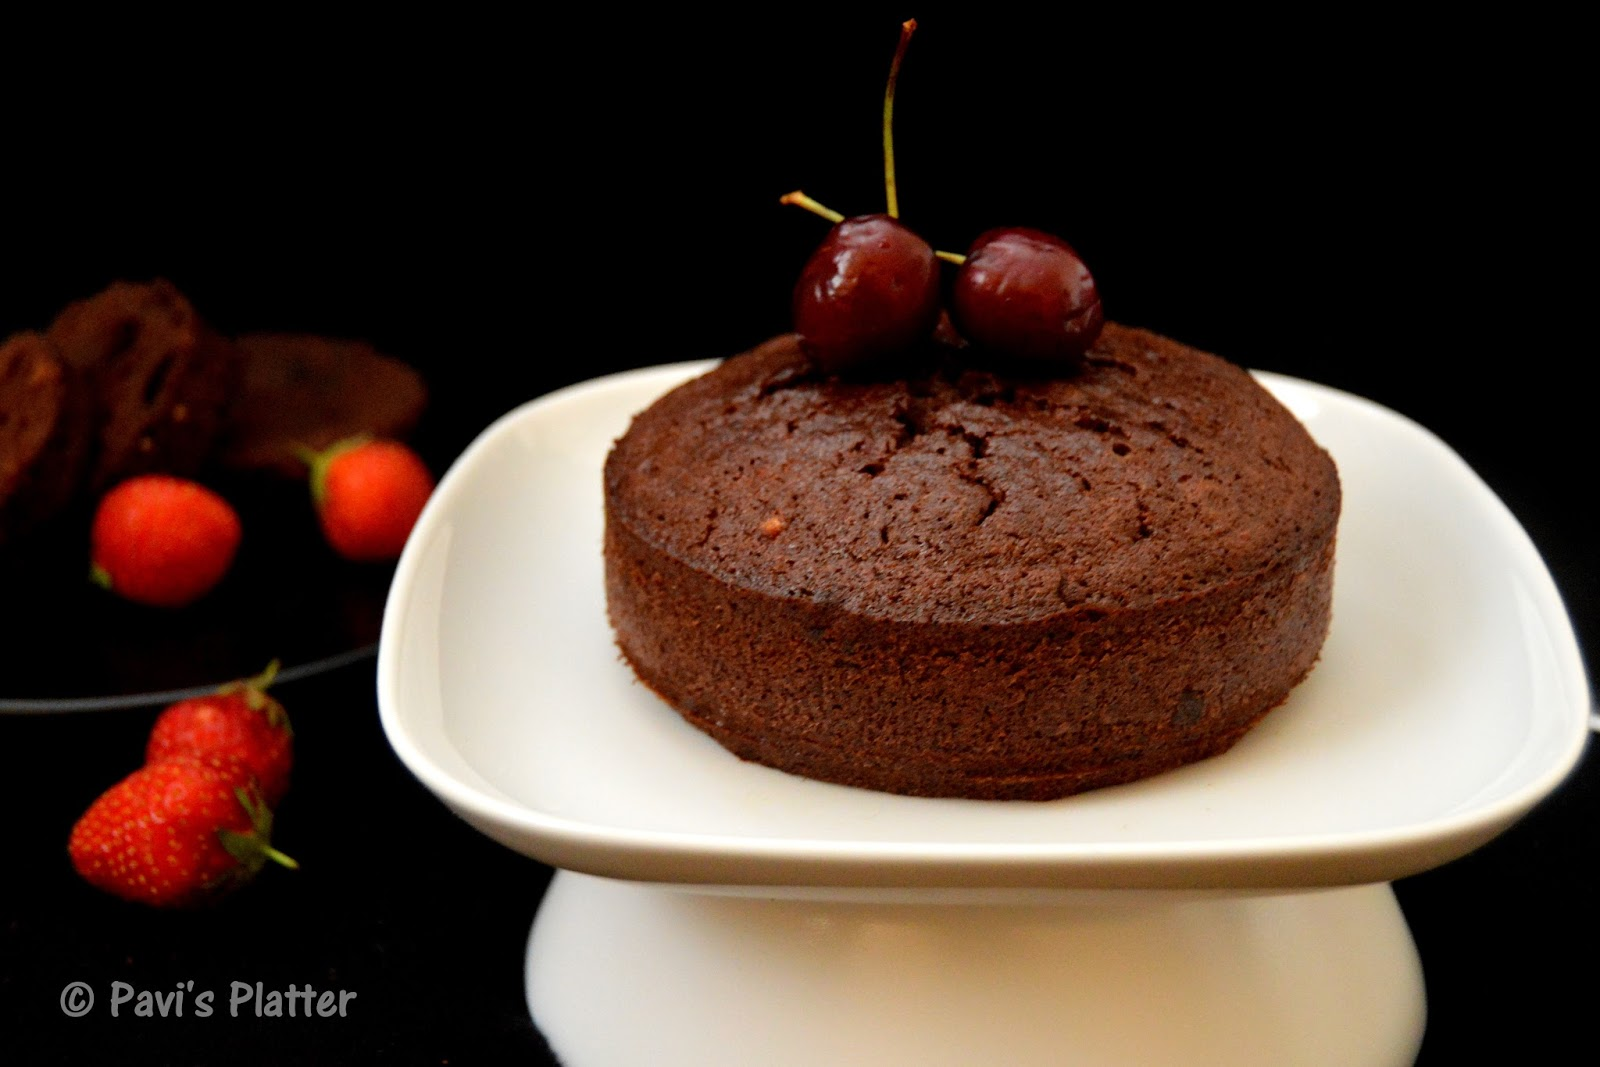 Can You Use Flora Buttery To Make Cakes